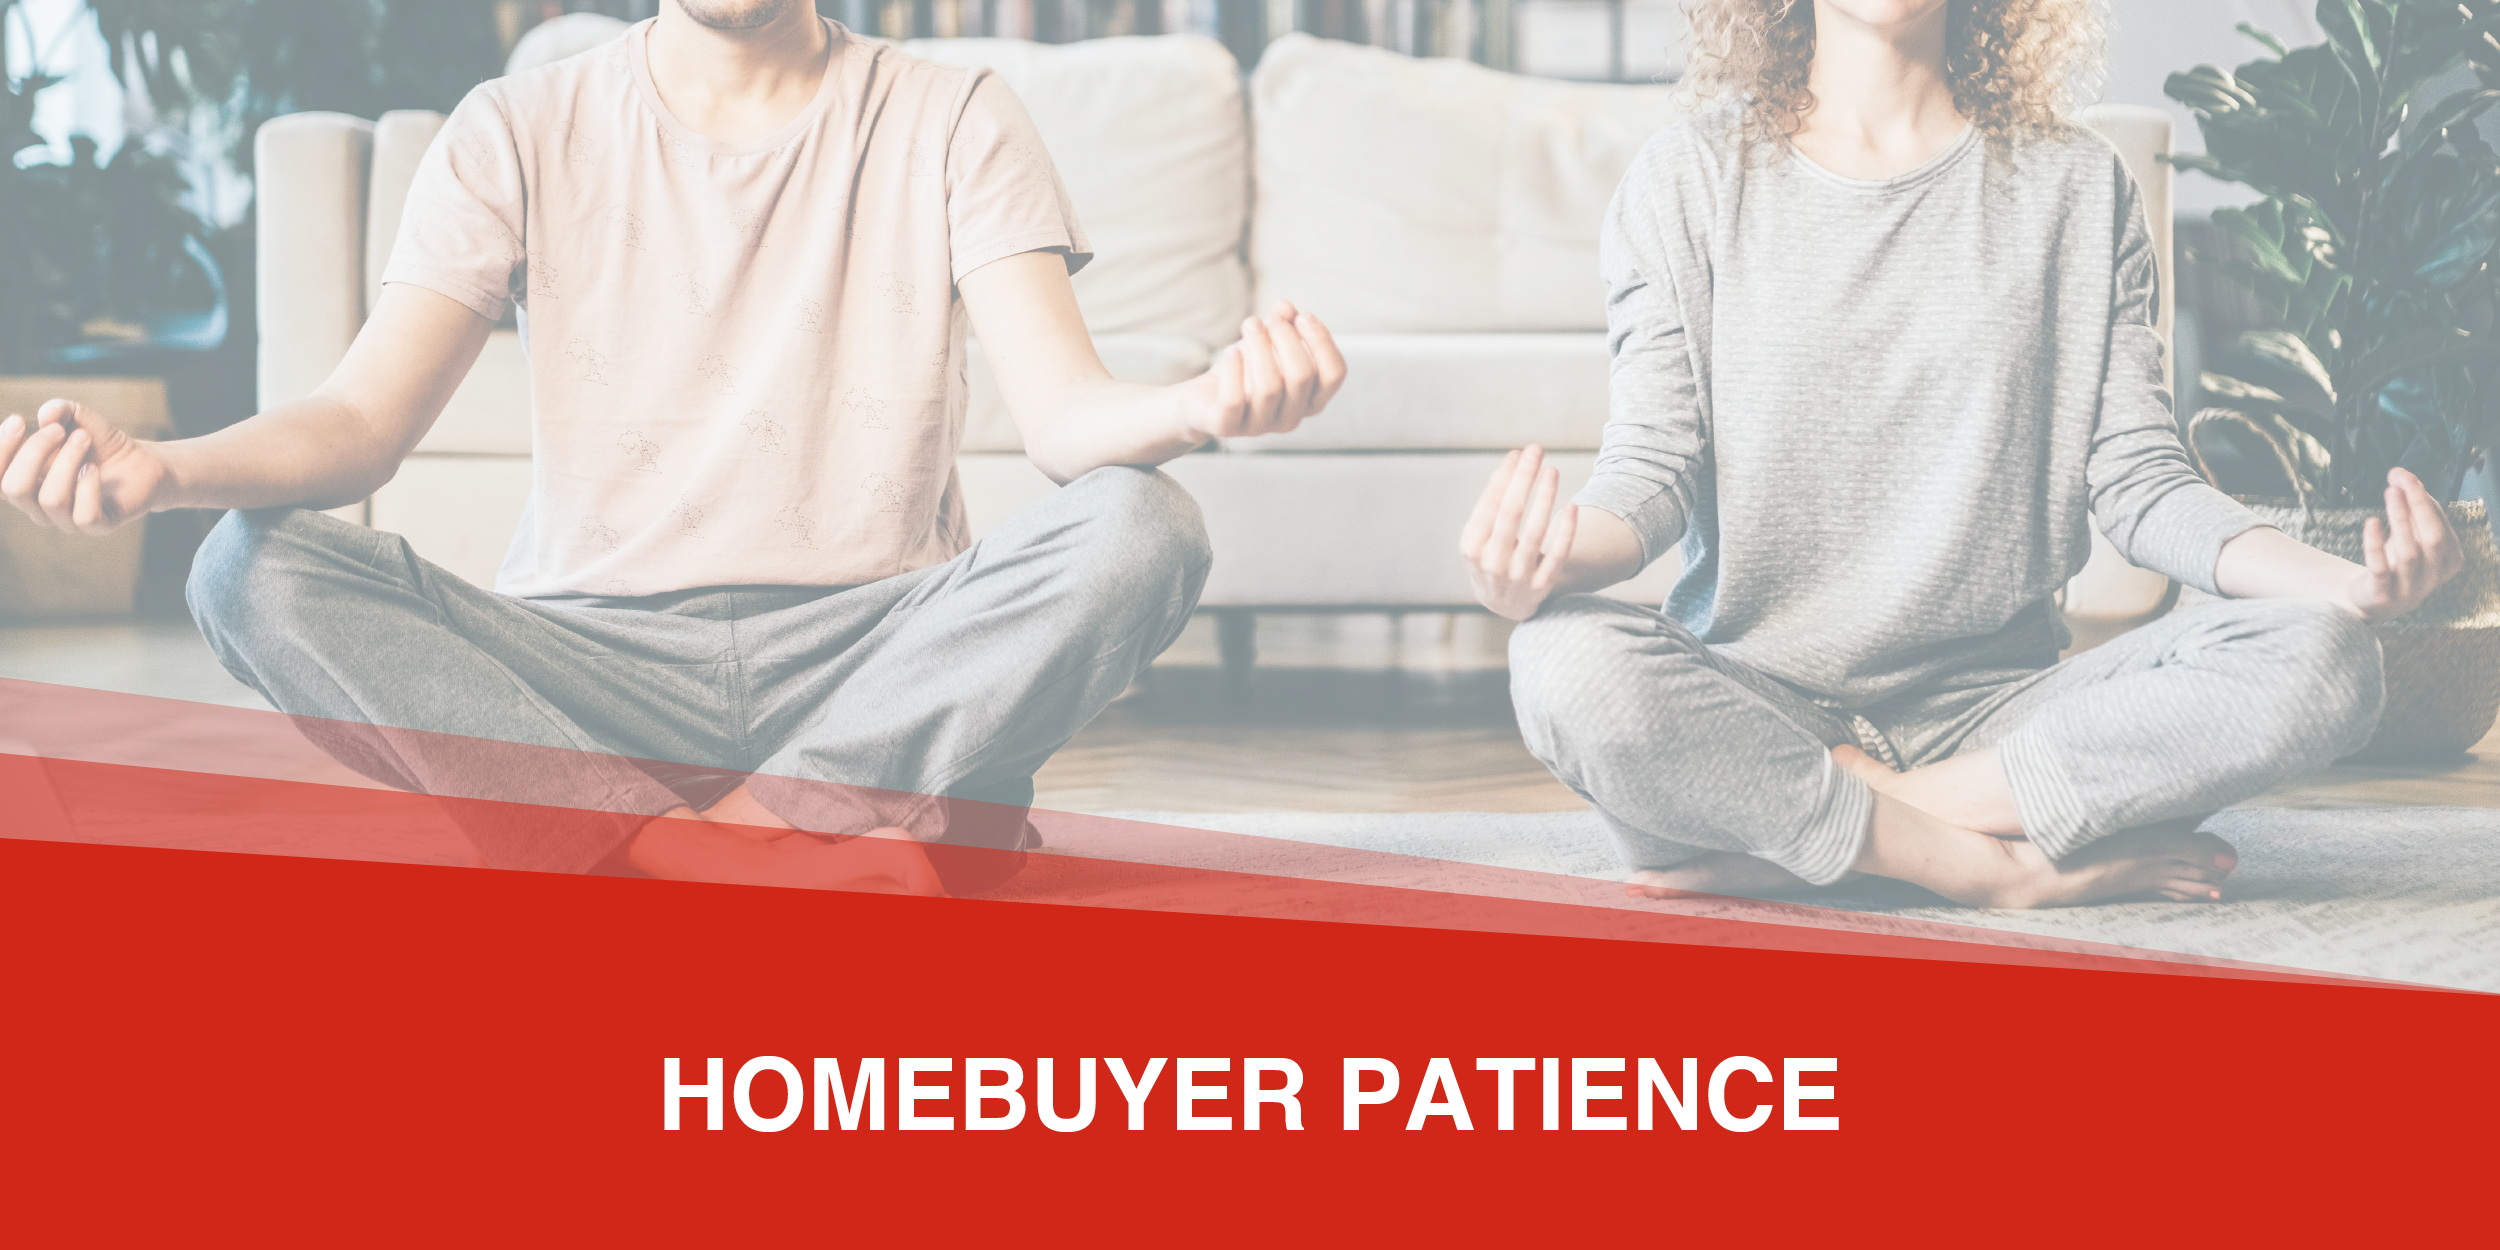 Having Patience as a Homebuyer